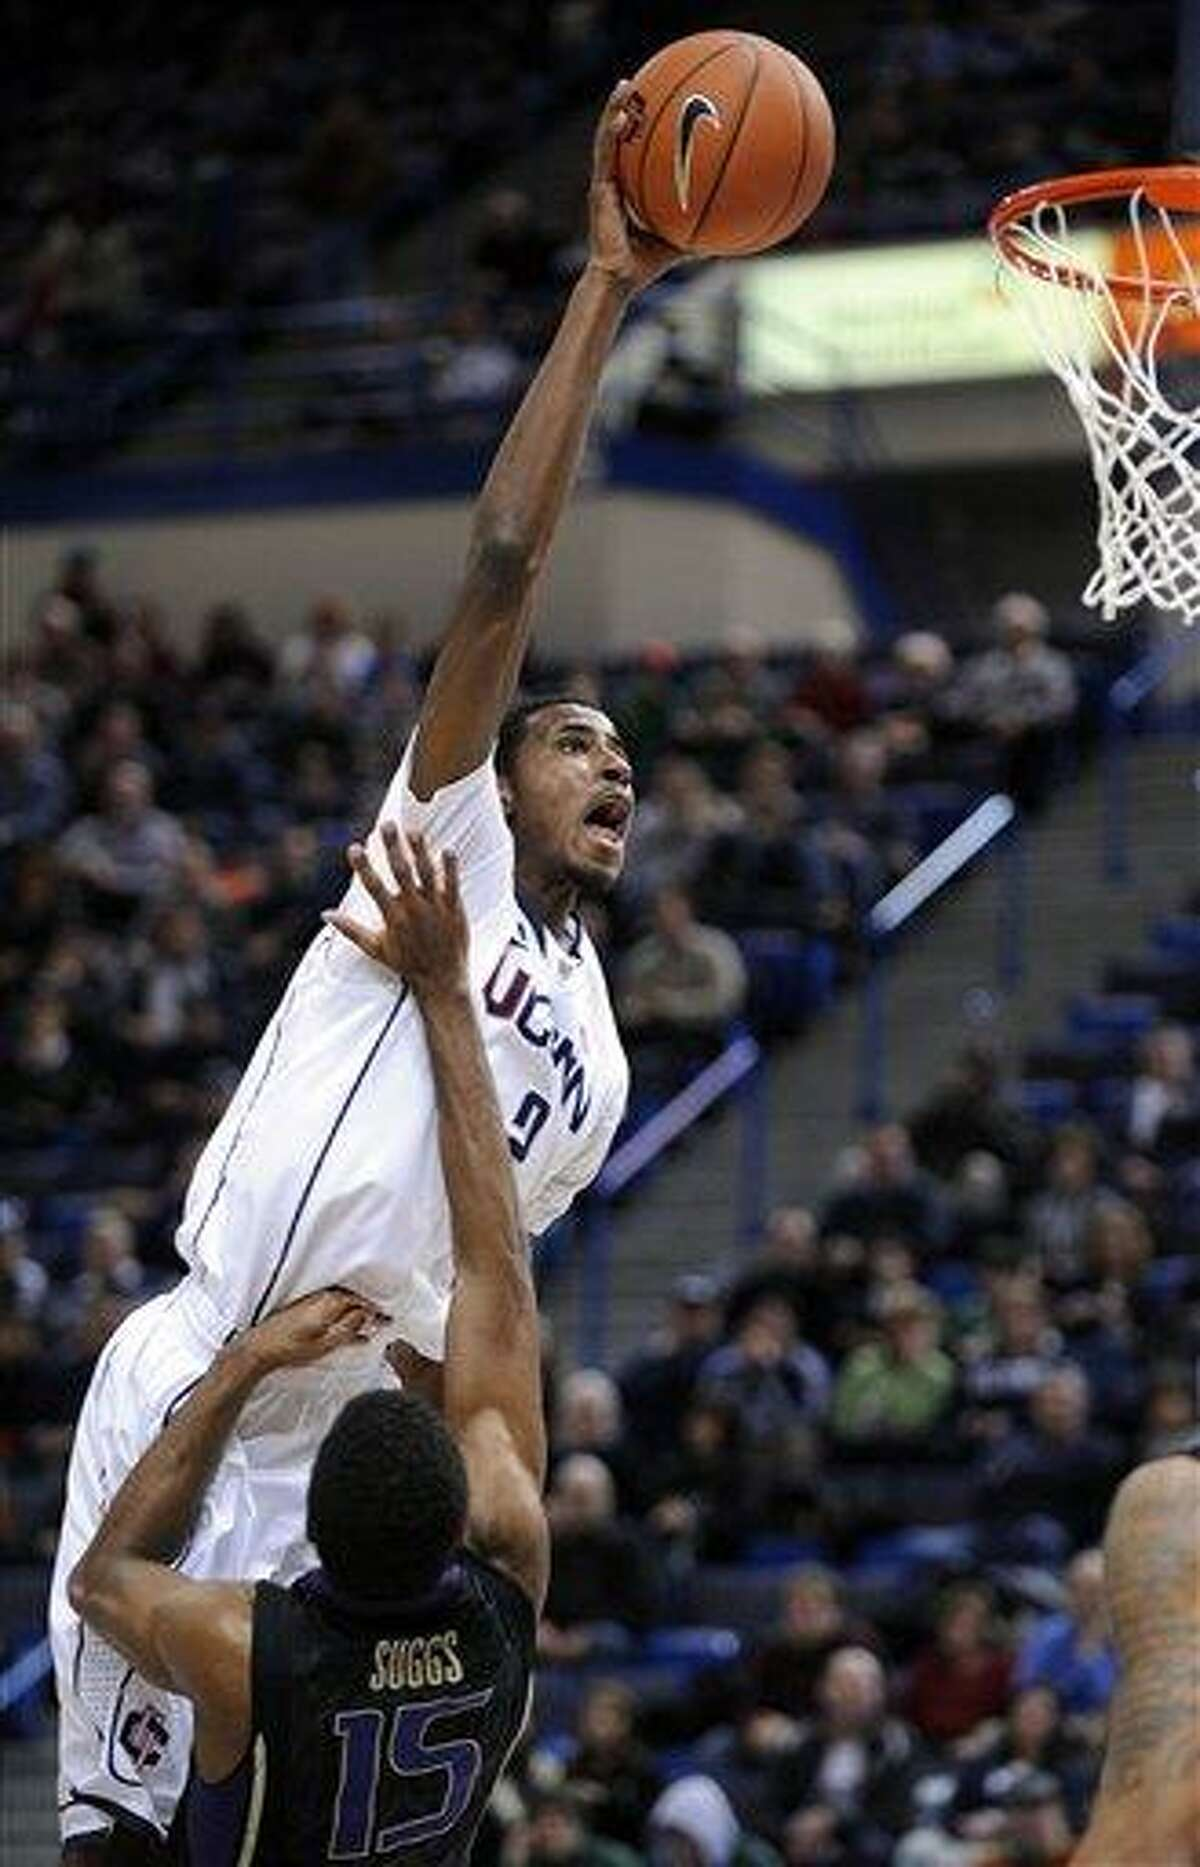 Connecticut's DeAndre Daniels, left, drives over Washington's Scott Suggs during the first half of an NCAA college basketball game in Hartford, Conn., Saturday, Dec. 29, 2012. (AP Photo/Fred Beckham)